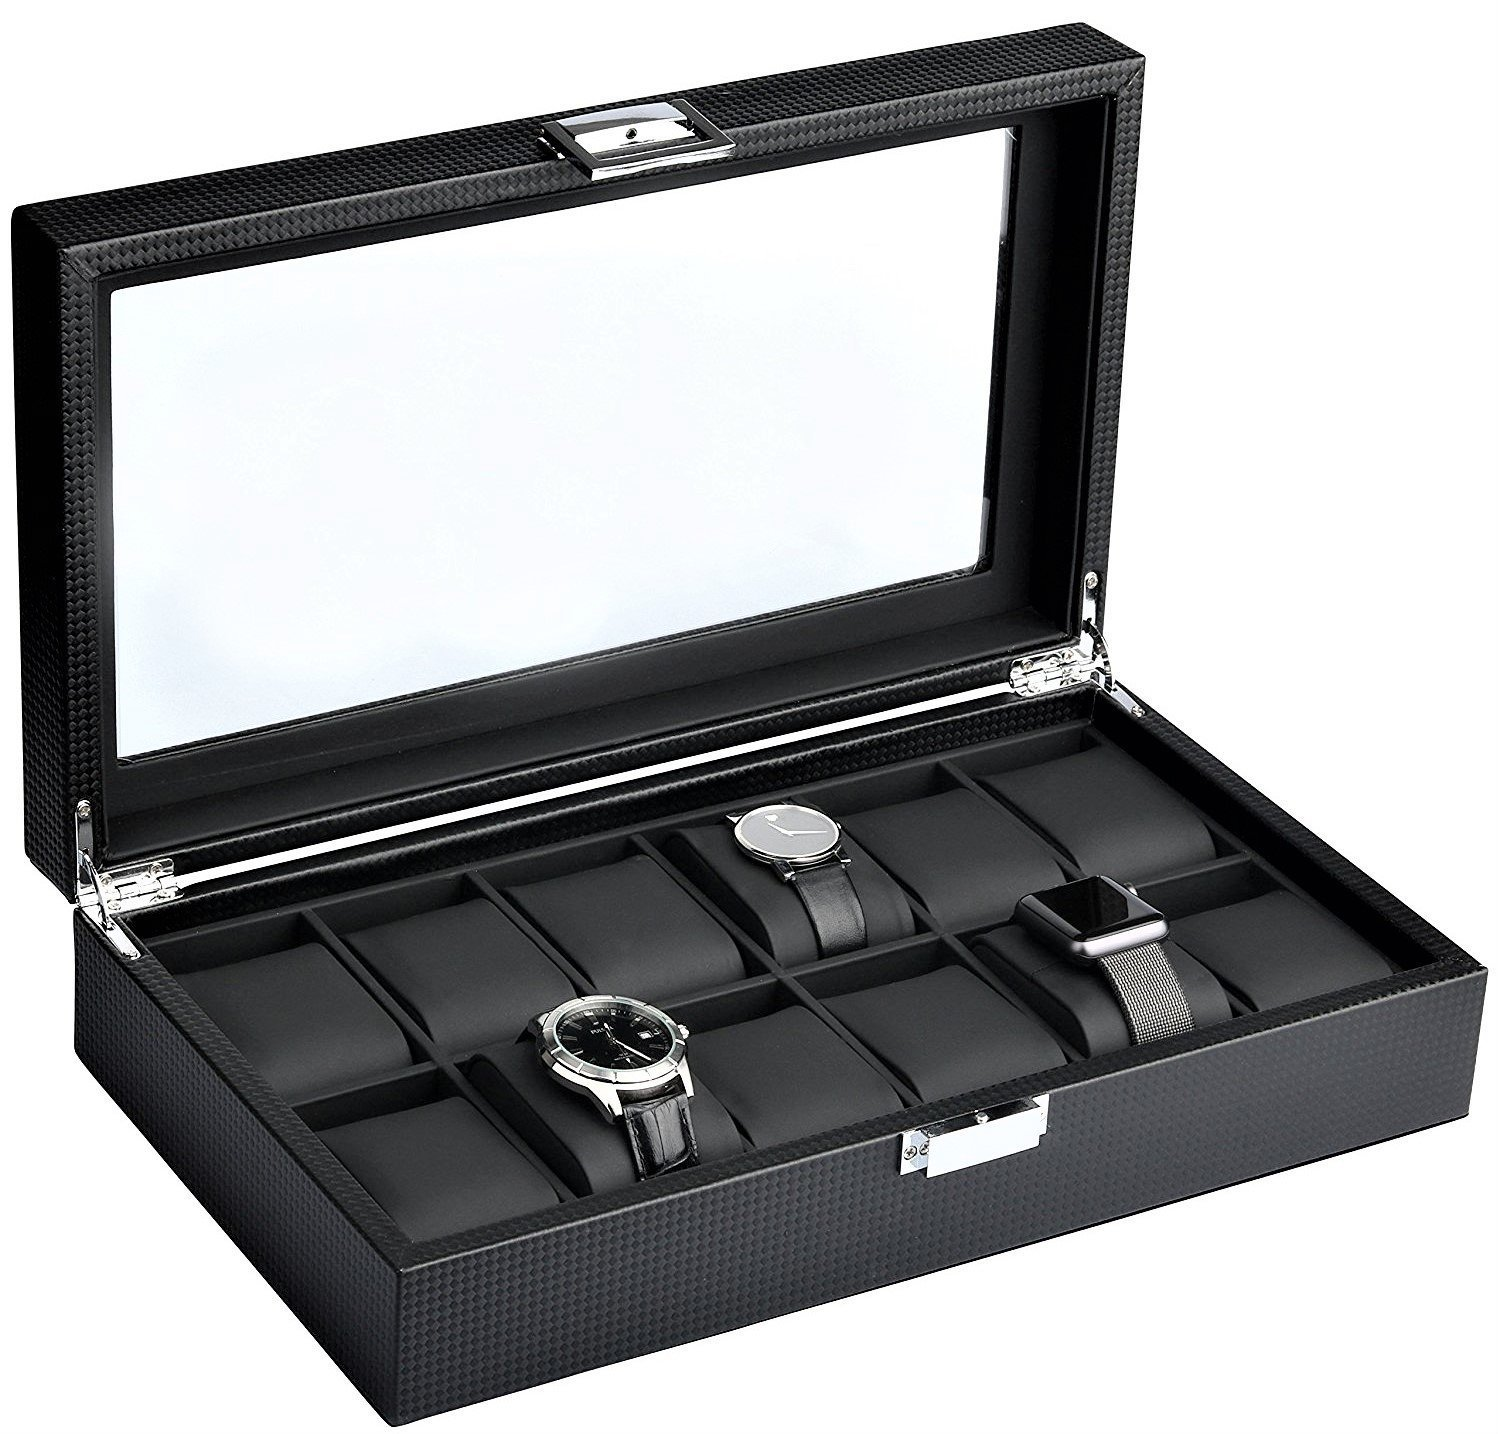 Mantello 12-Watch Display Box Carbon Fiber Design with Glass Top